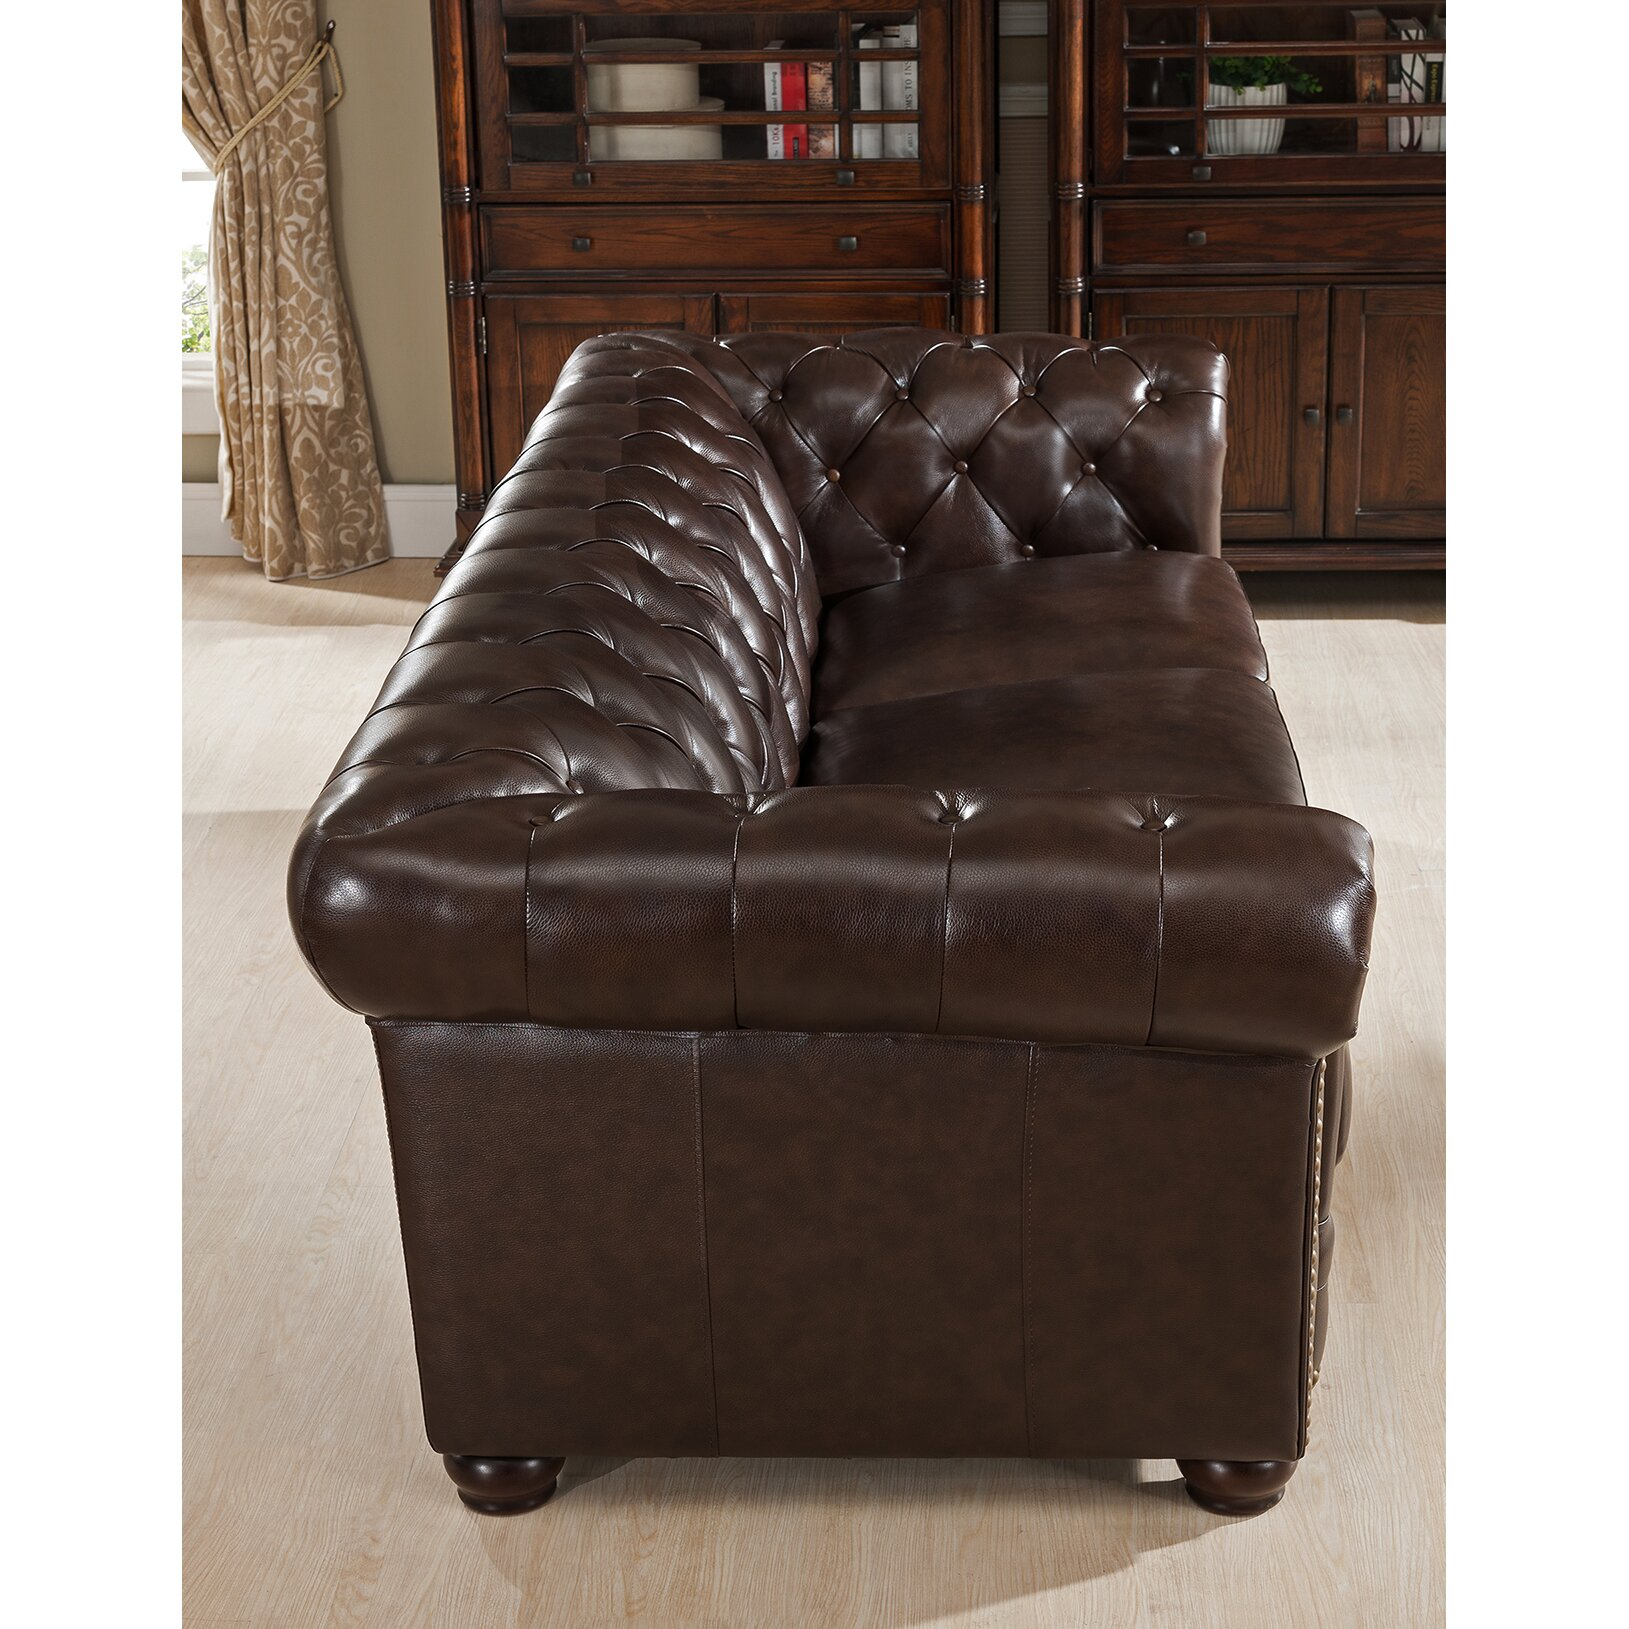 amax kensington top grain leather chesterfield sofa reviews wayfair. Black Bedroom Furniture Sets. Home Design Ideas